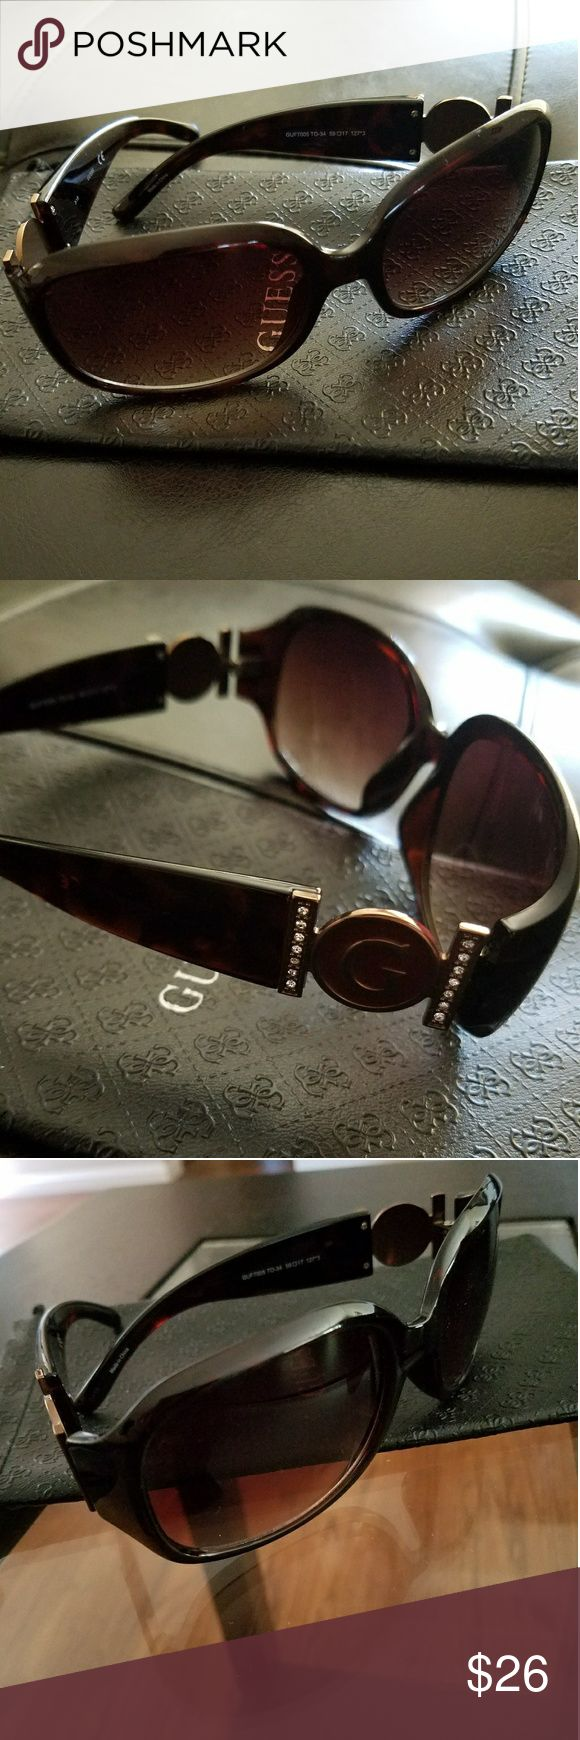 Guess Sunglasses! New w/o Tags in great condition! GUESS Sunglasses with case.  Tortoise color with G embellishment and cz looking details. :) Guess Accessories Sunglasses